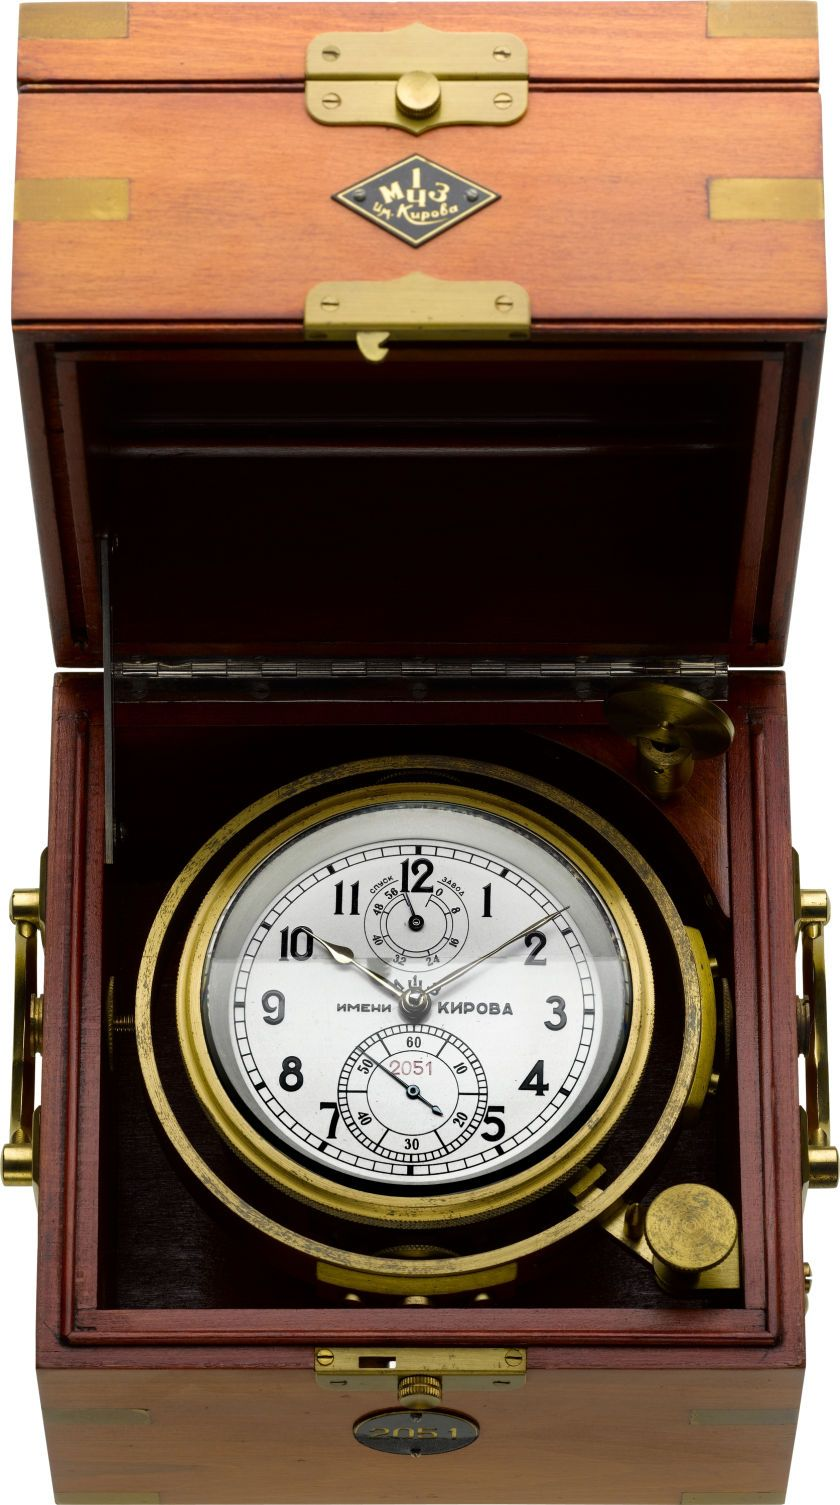 Timepiecesclocks russian naval ships chronometer with 56 hour timepiecesclocks russian naval ships chronometer with 56 hour wind indicator circa1956 amipublicfo Images